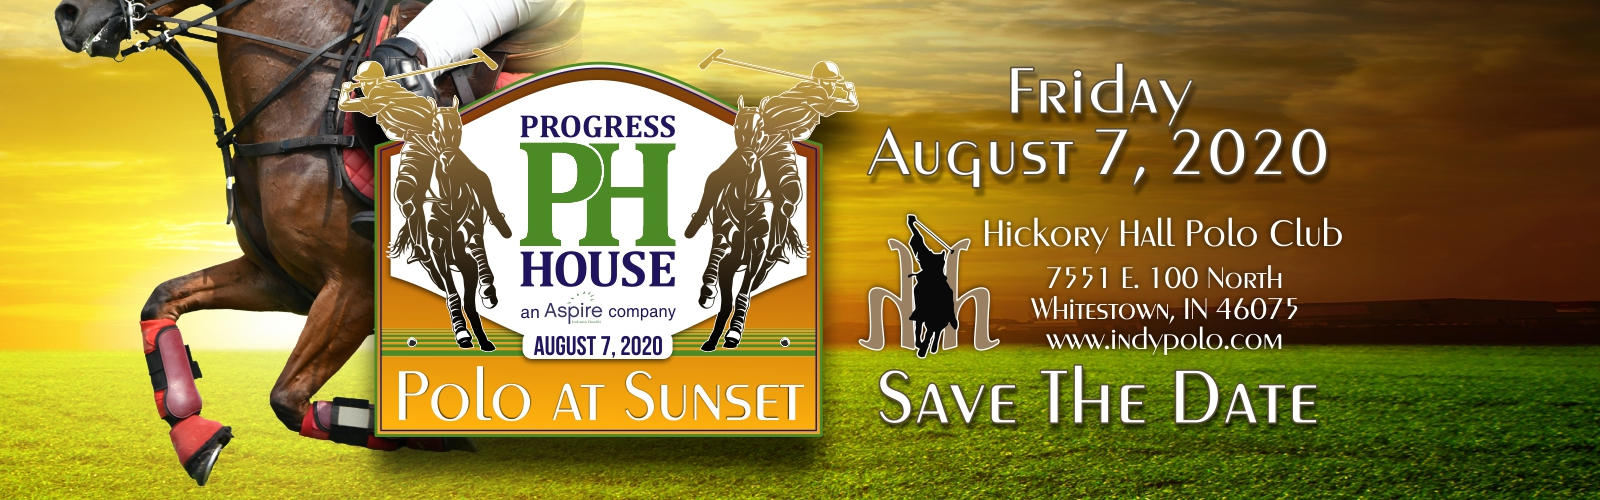 Progress House Polo at Sunset